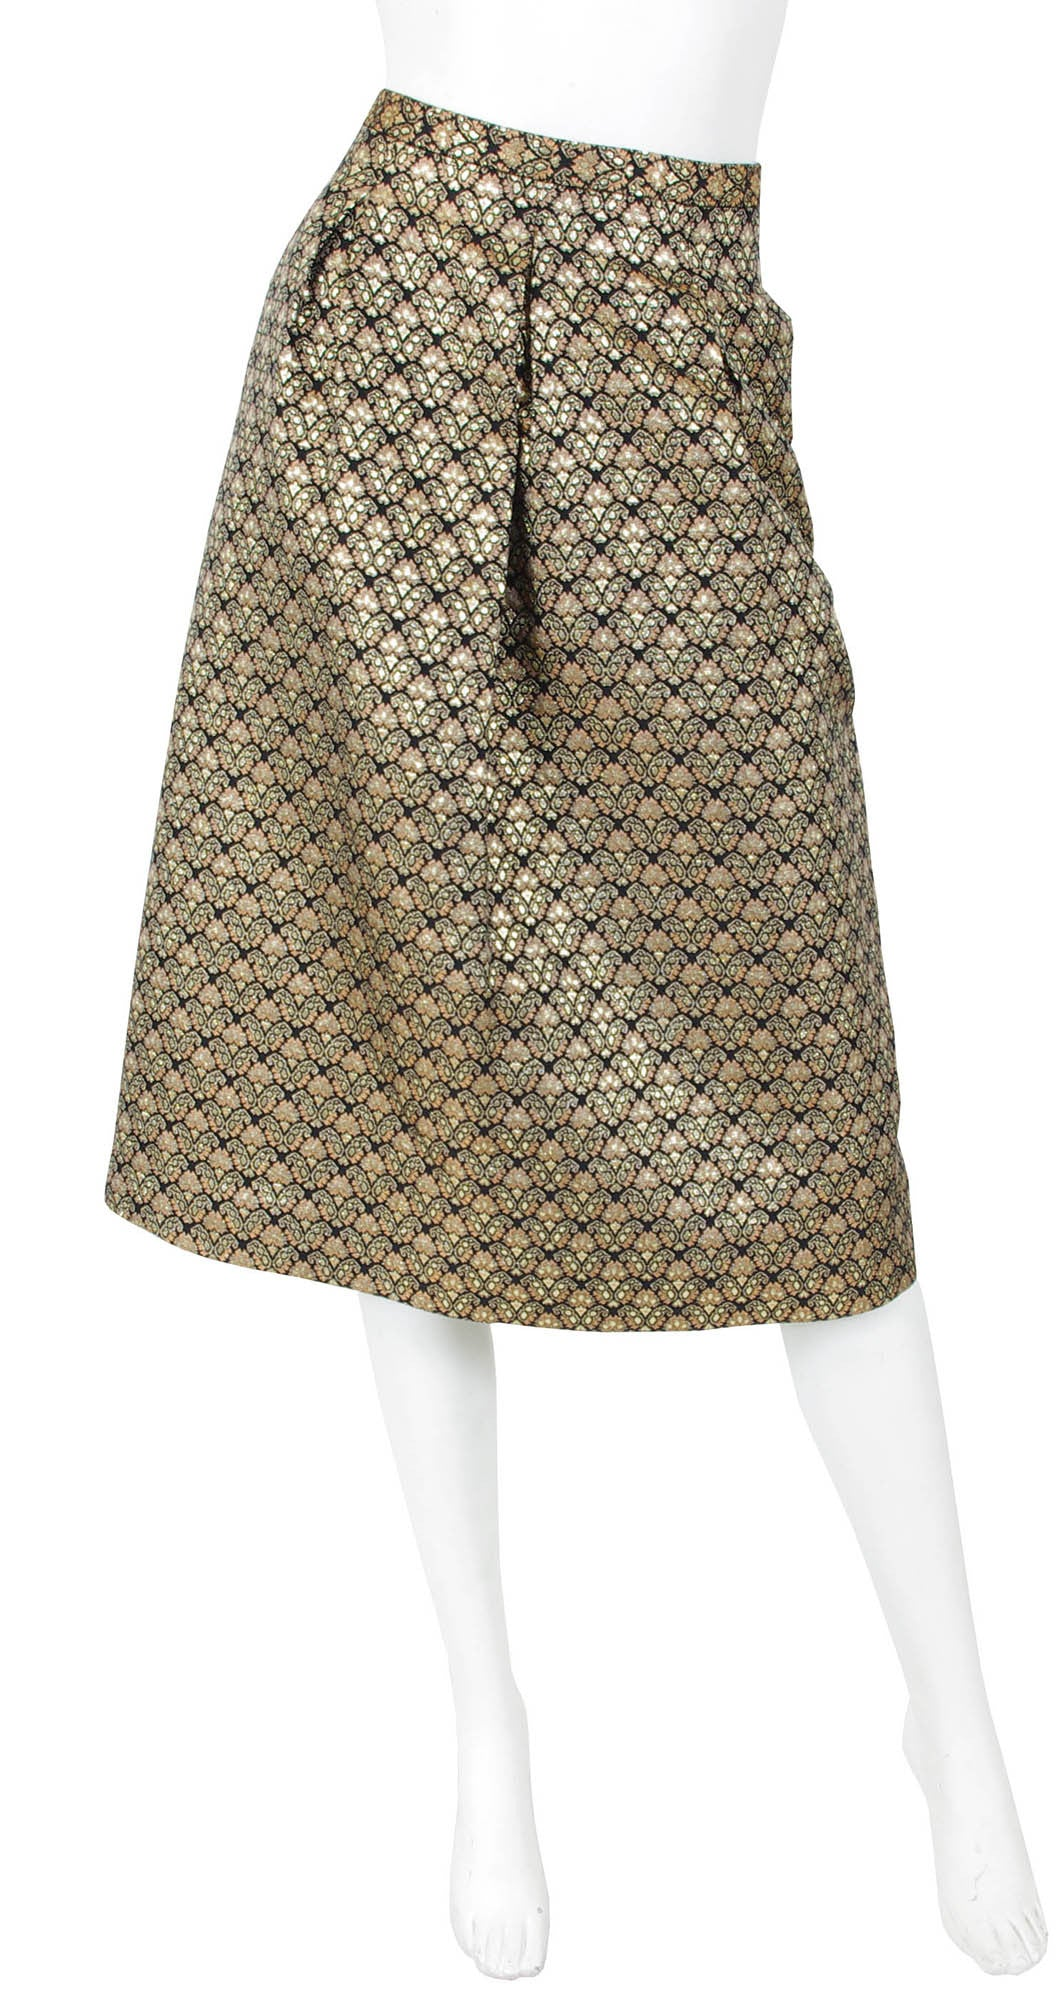 1960s Floral Metallic Brocade Evening Skirt